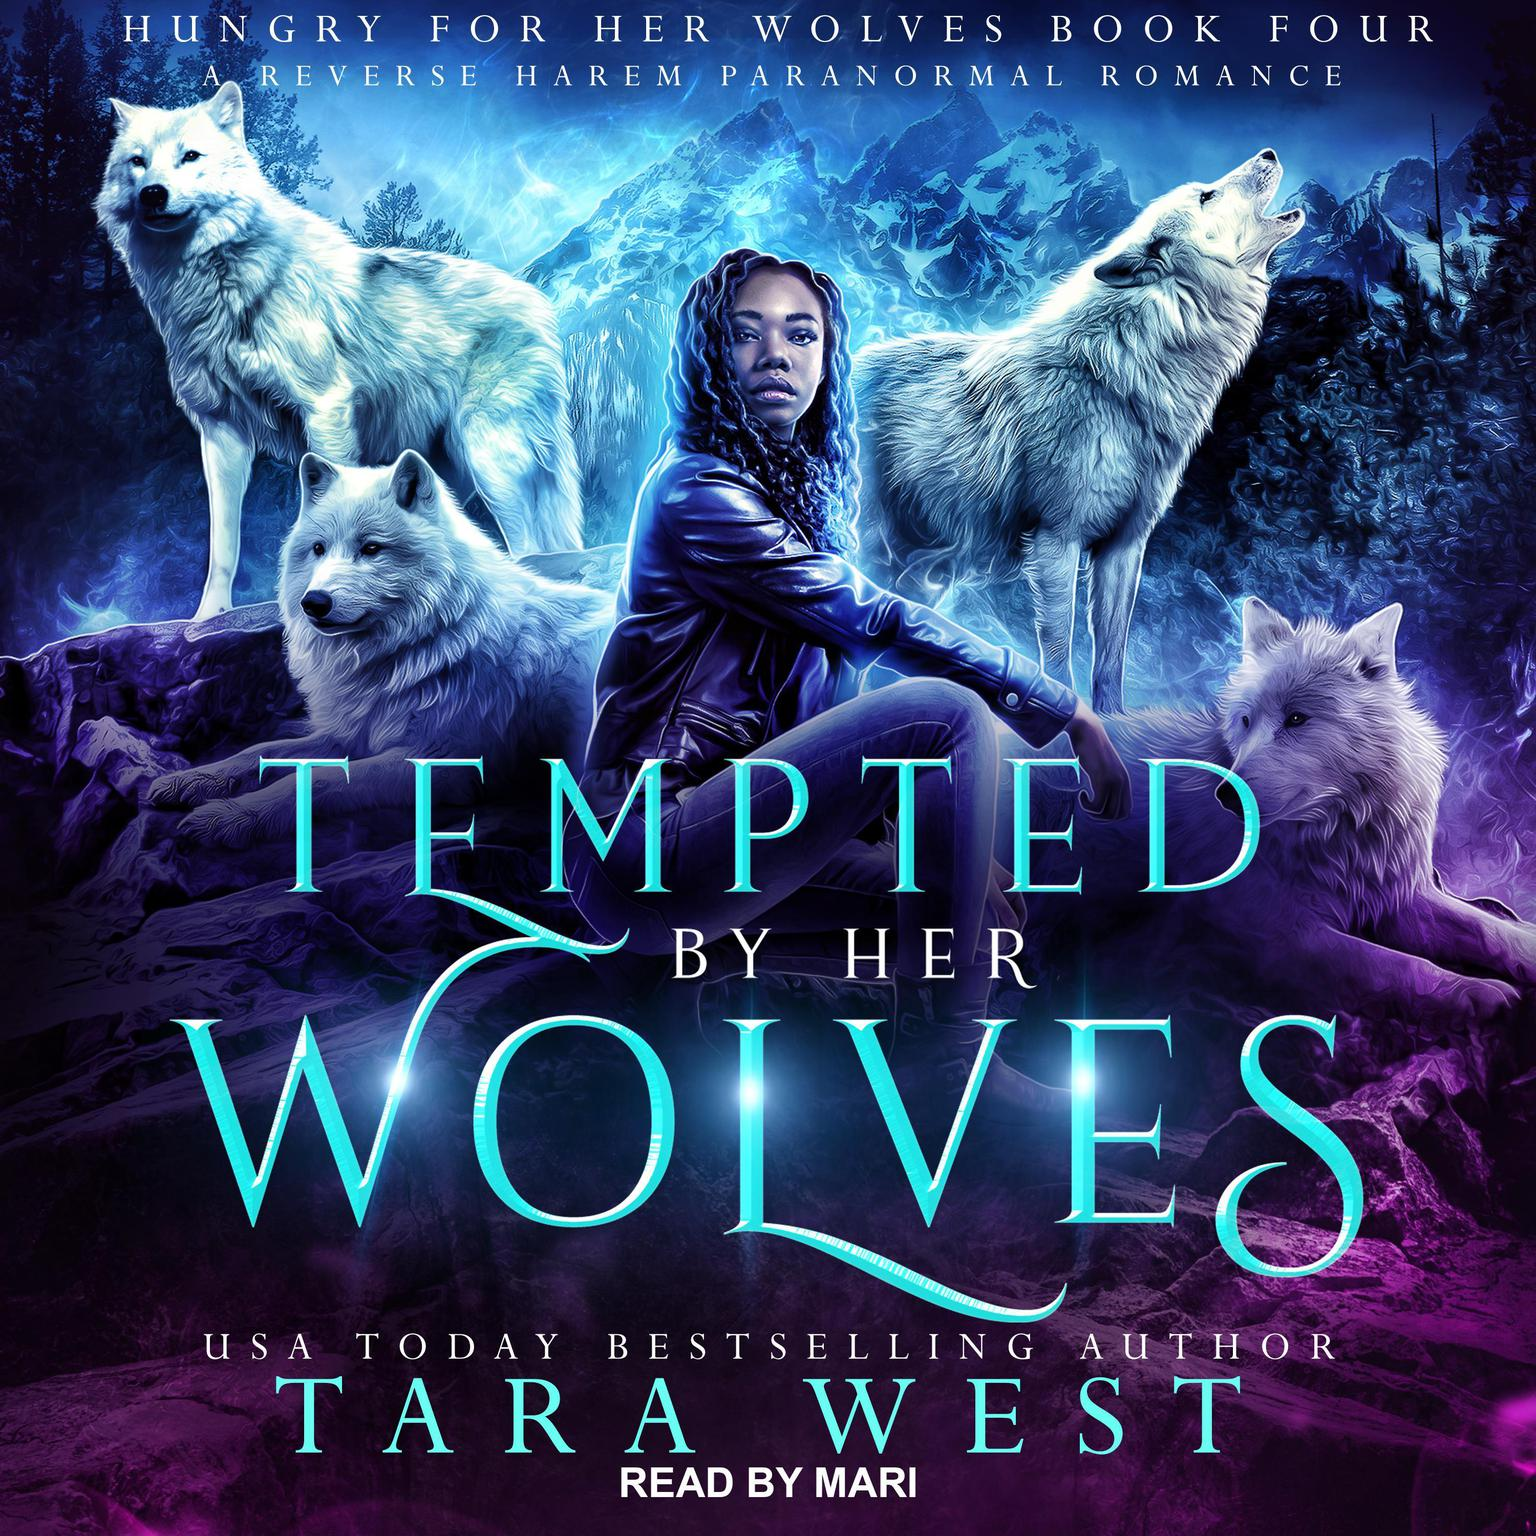 Tempted by Her Wolves: A Reverse Harem Paranormal Romance Audiobook